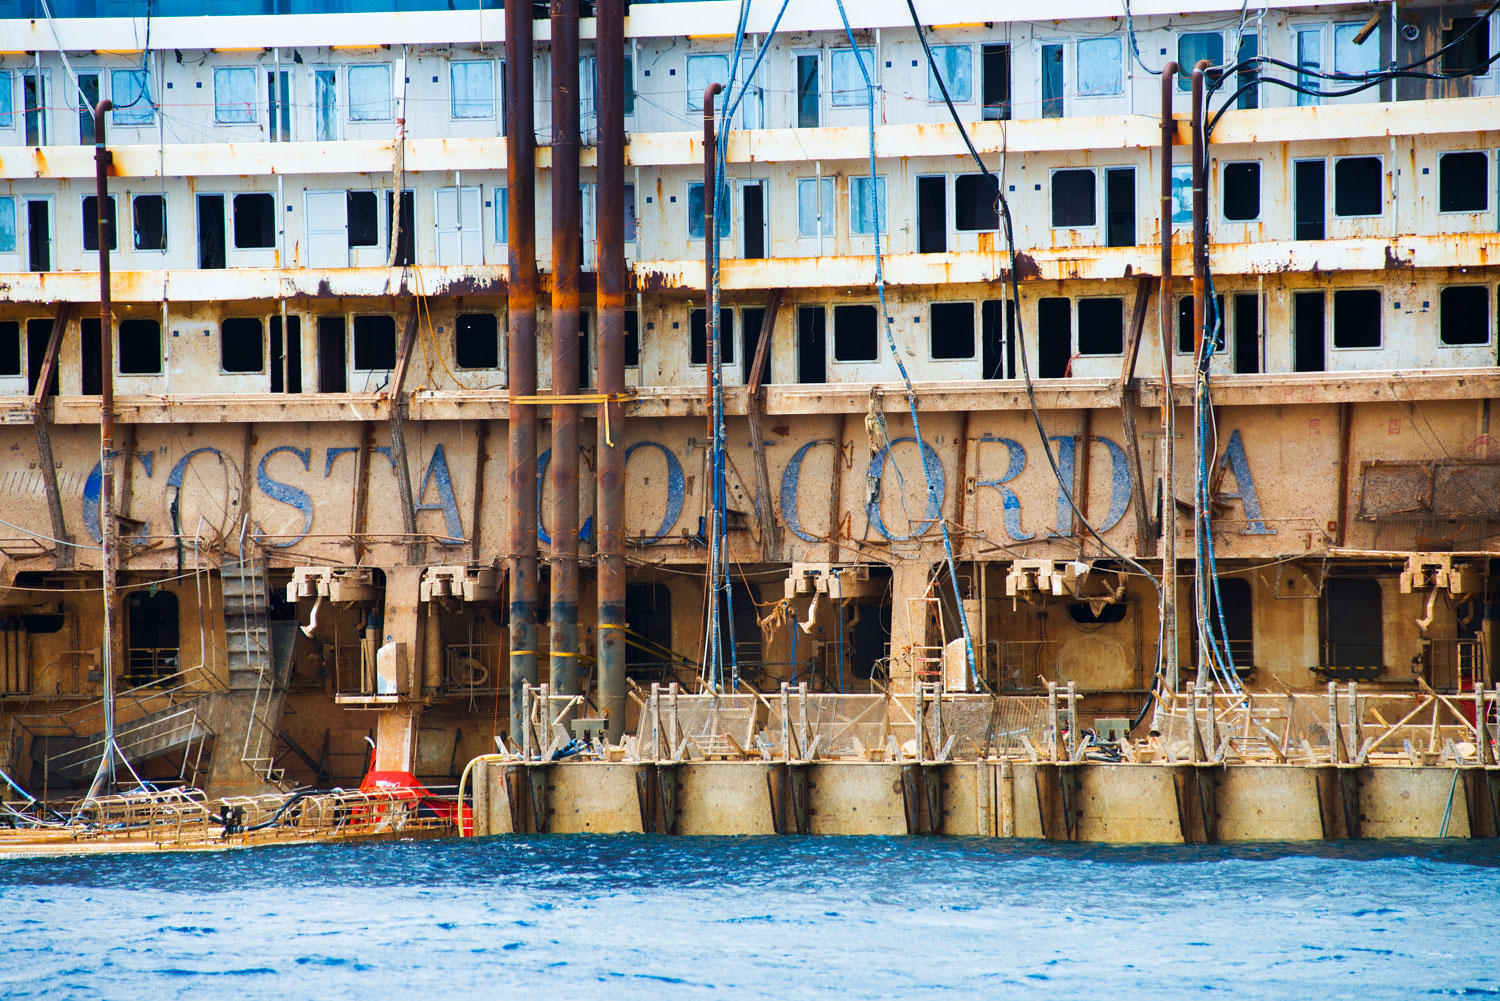 The side of the Costa Concordia on July 21, 2014 in Giglio Porto, Italy.